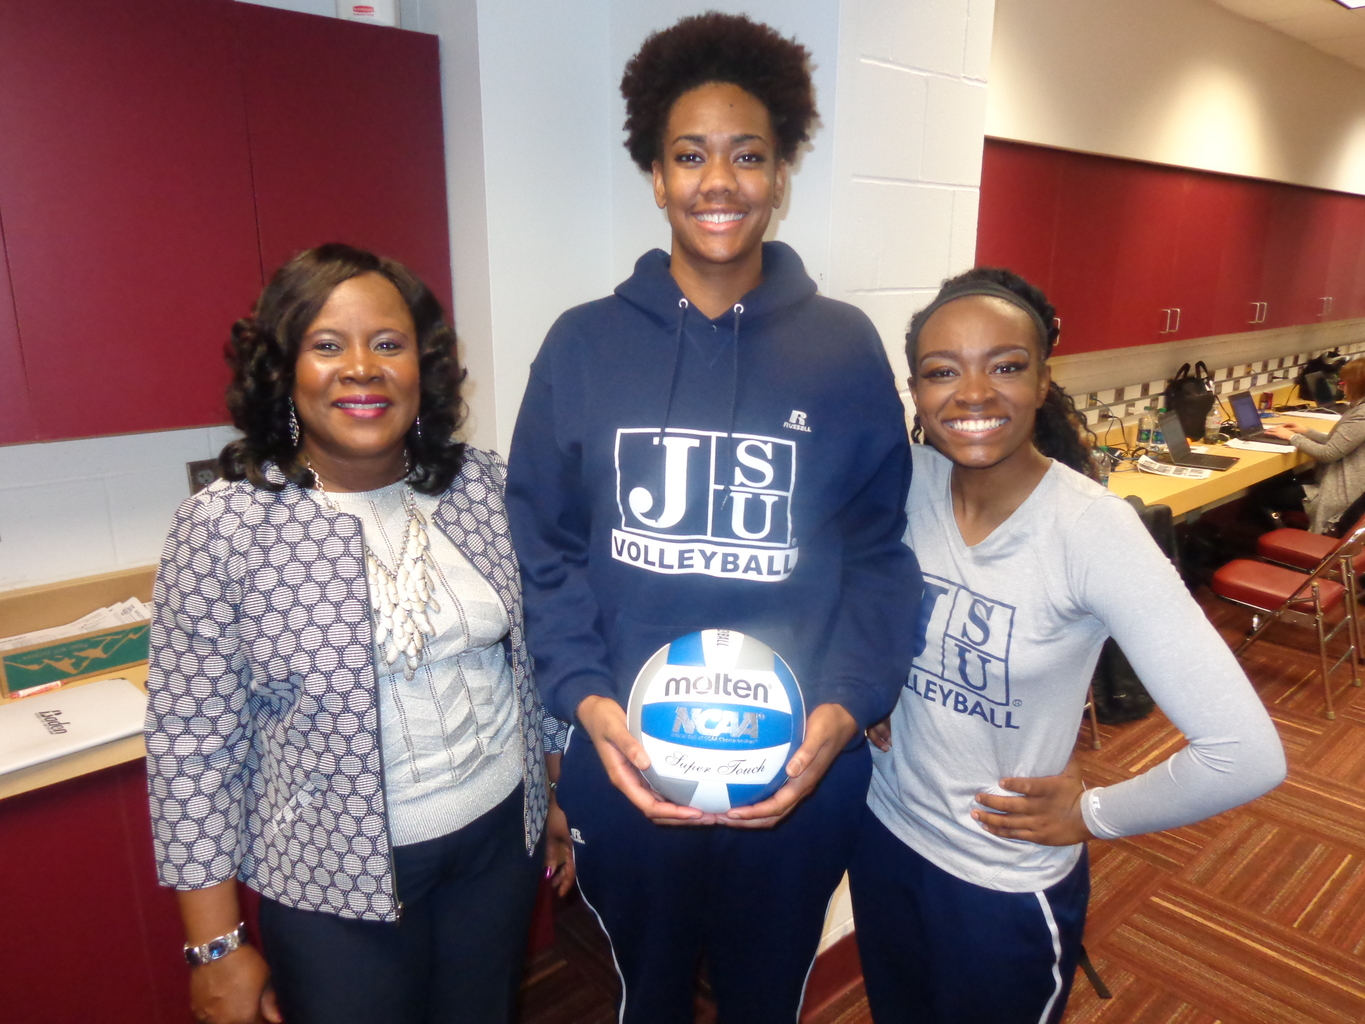 (l-r) Jackson State Coach Rose Washington and seniors Alexsis Ford and Keirsten Howard